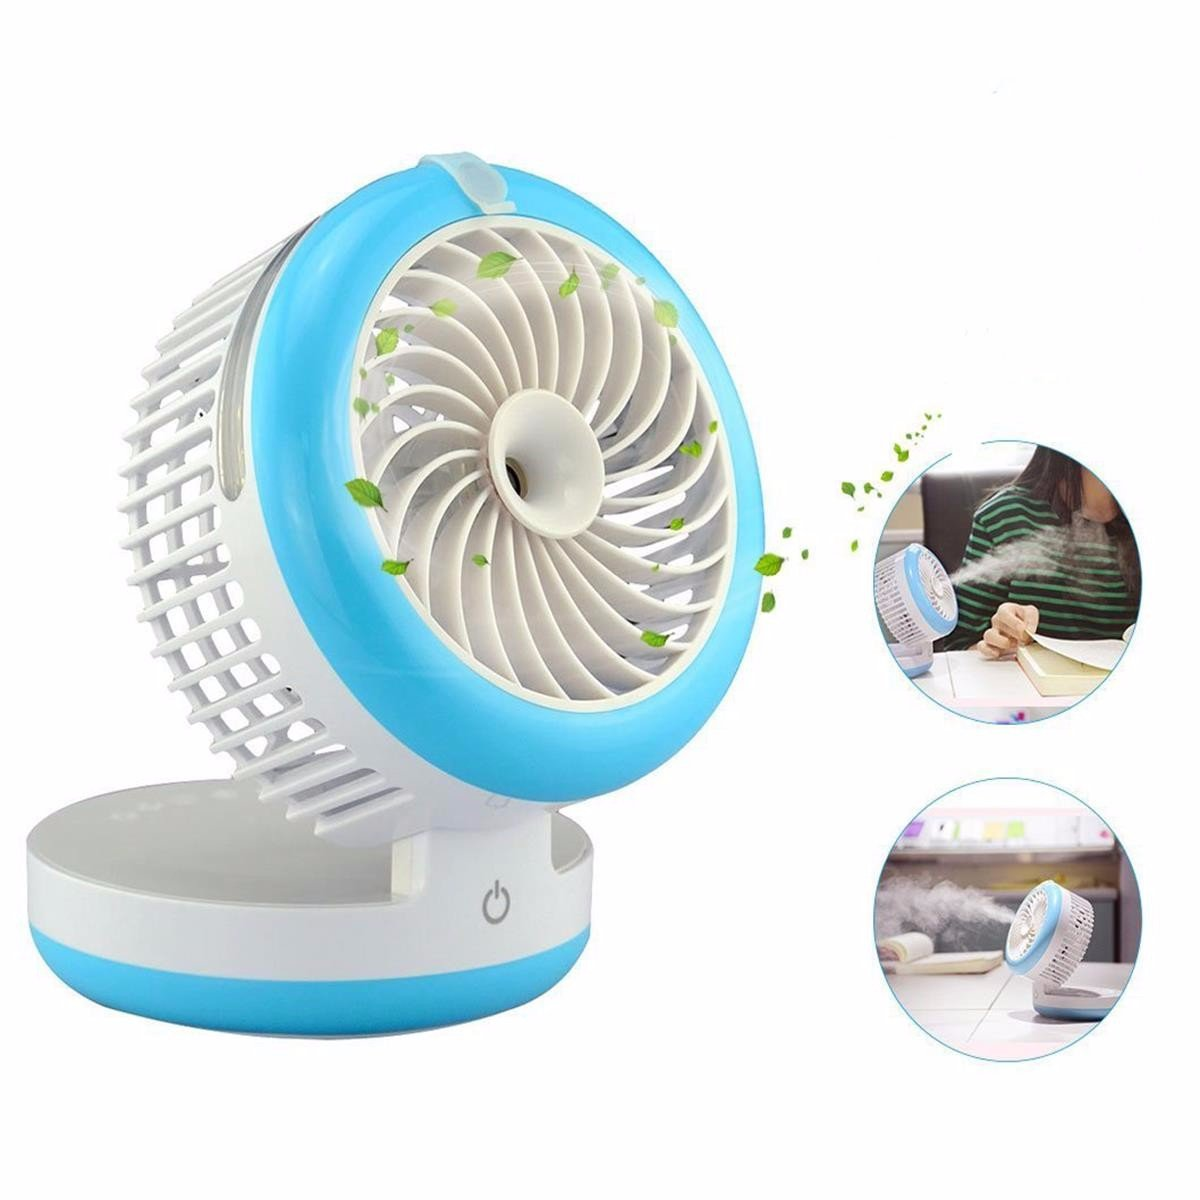 10 Best Portable Fans For Travel In 2017 Vacation Advice 101